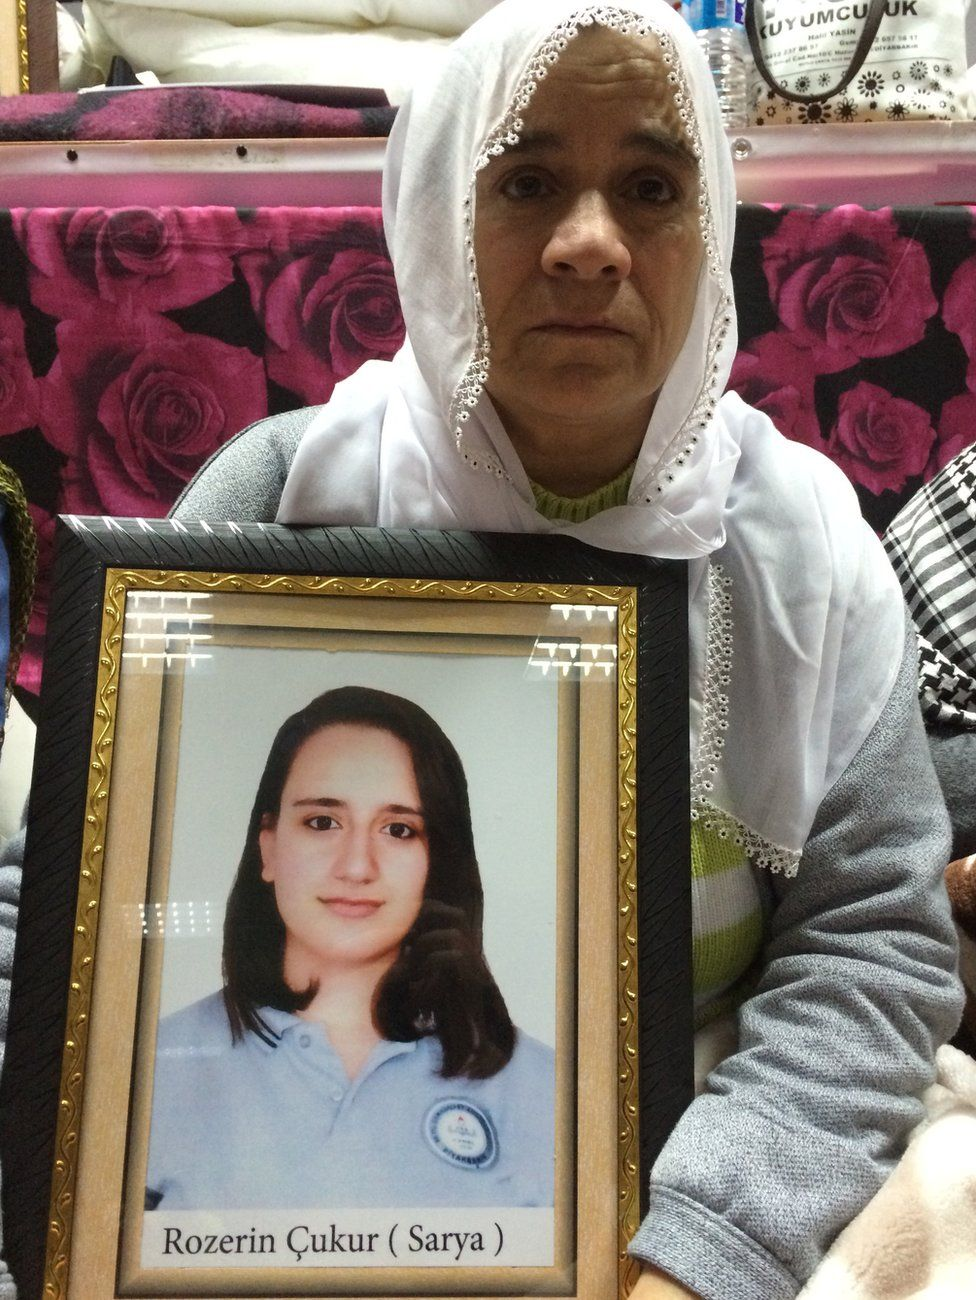 Fahriye Cukur with picture of her daughter